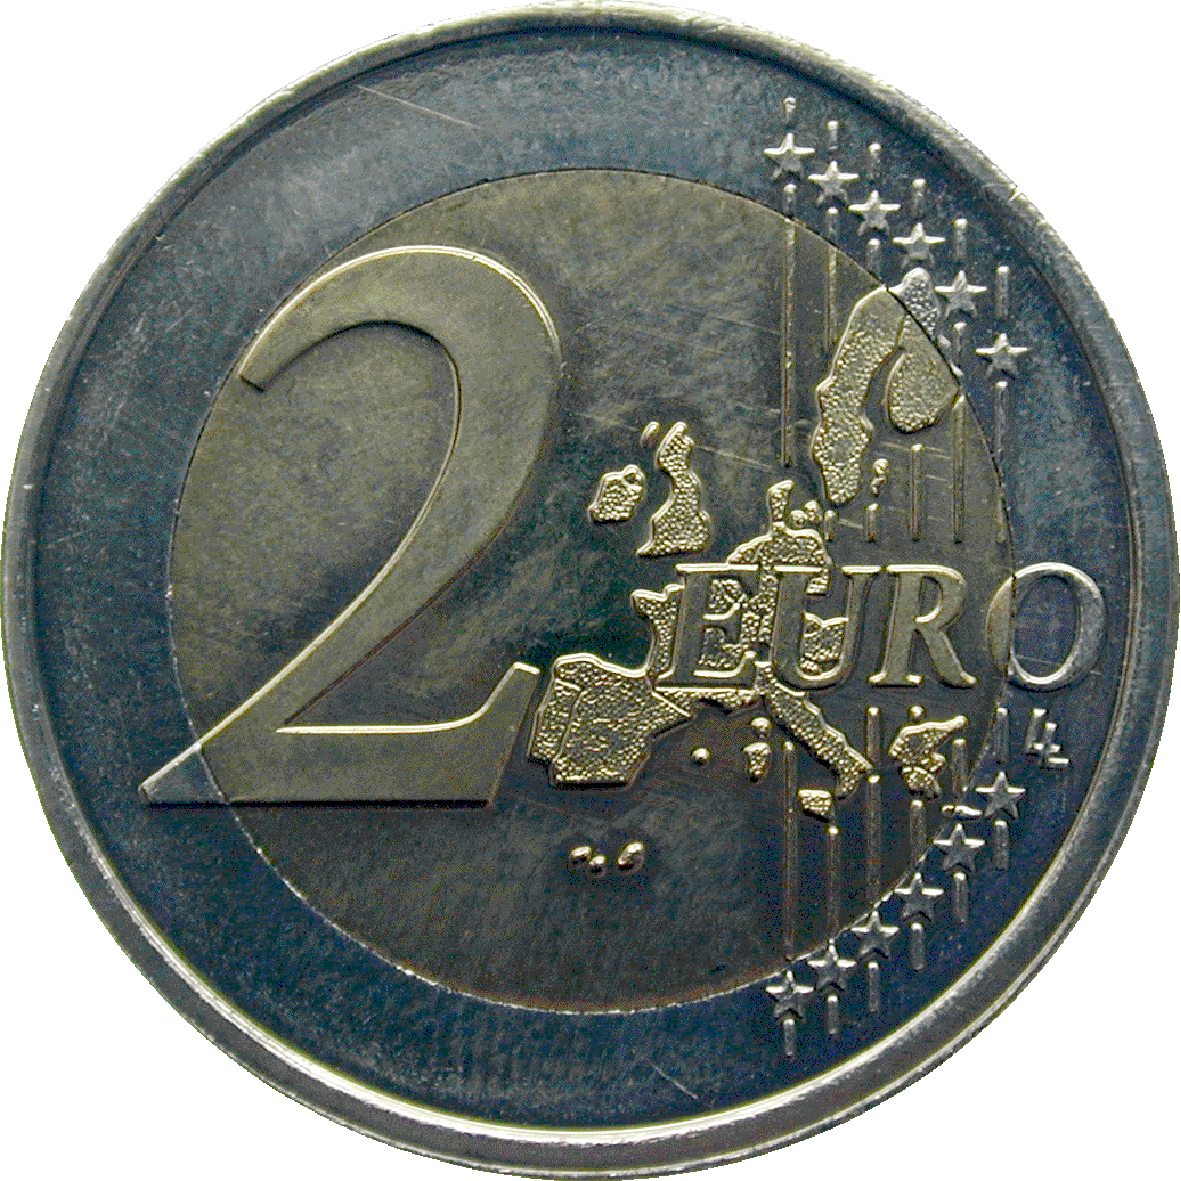 Kingdom of the Netherlands, Beatrix, 2 Euro 2002 (obverse)